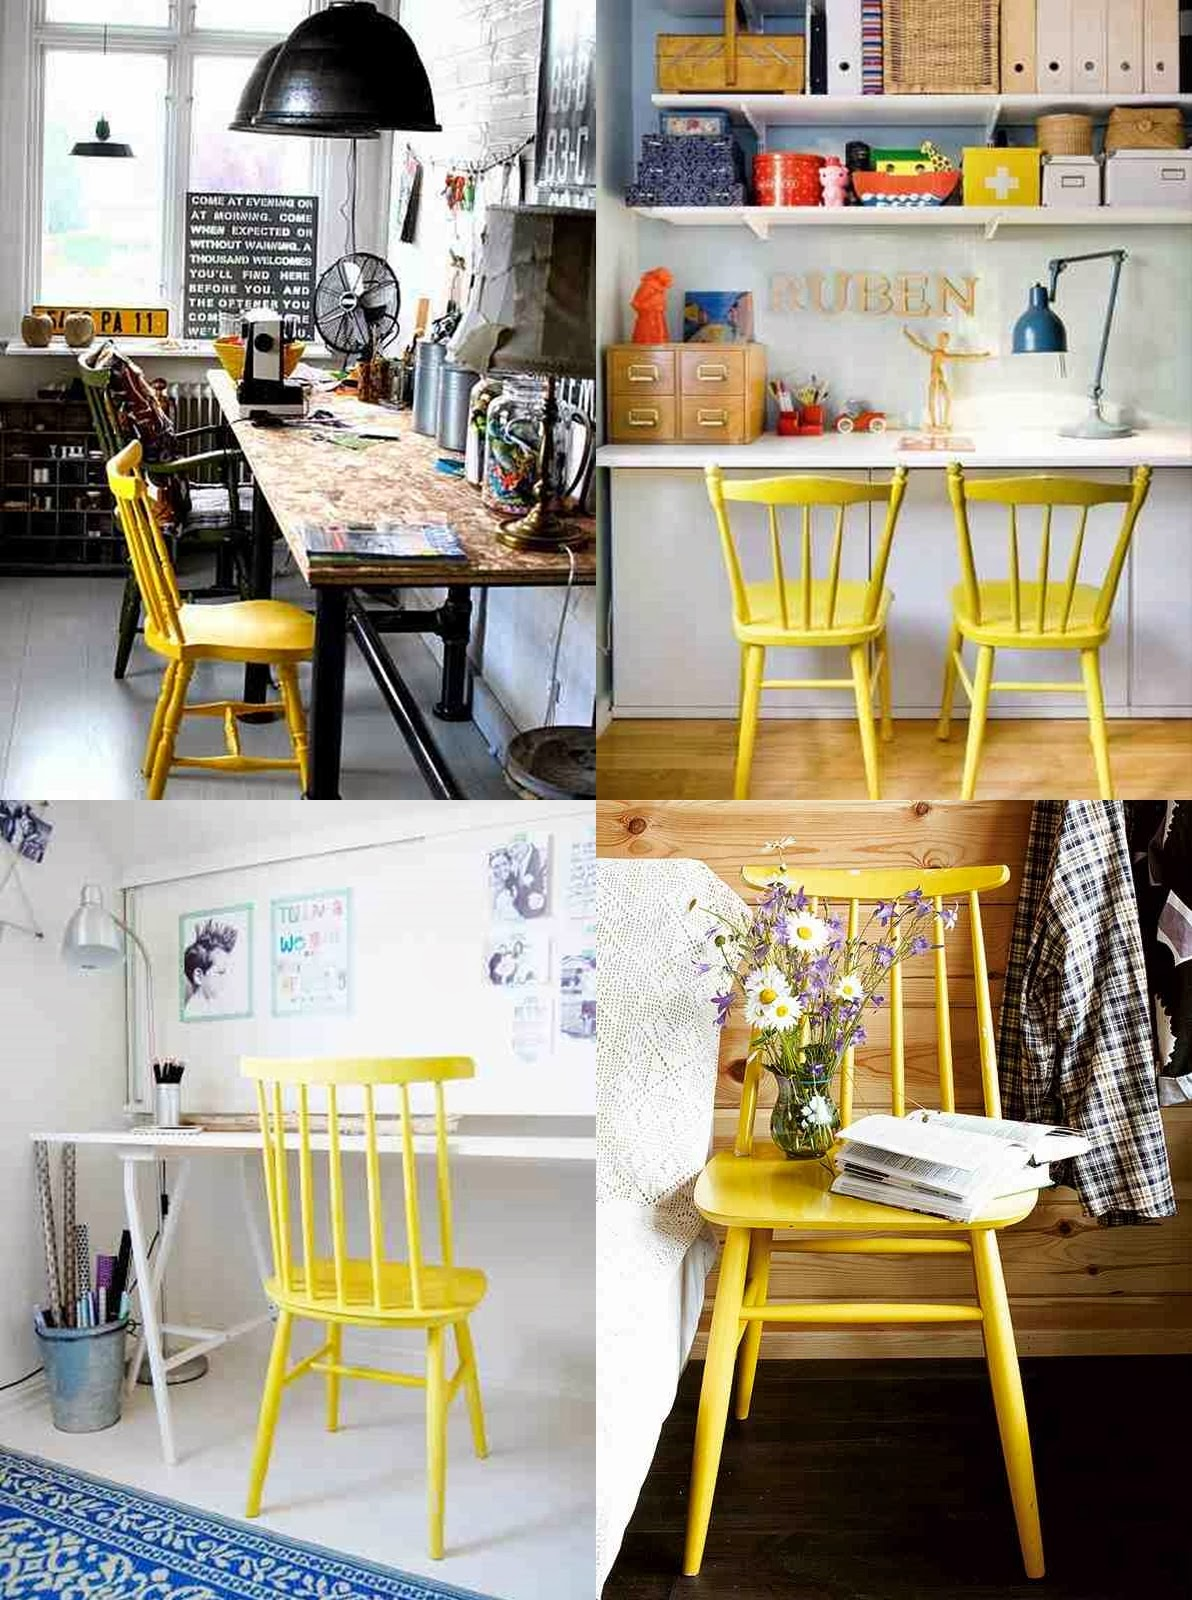 Workspace design and yellow chairs